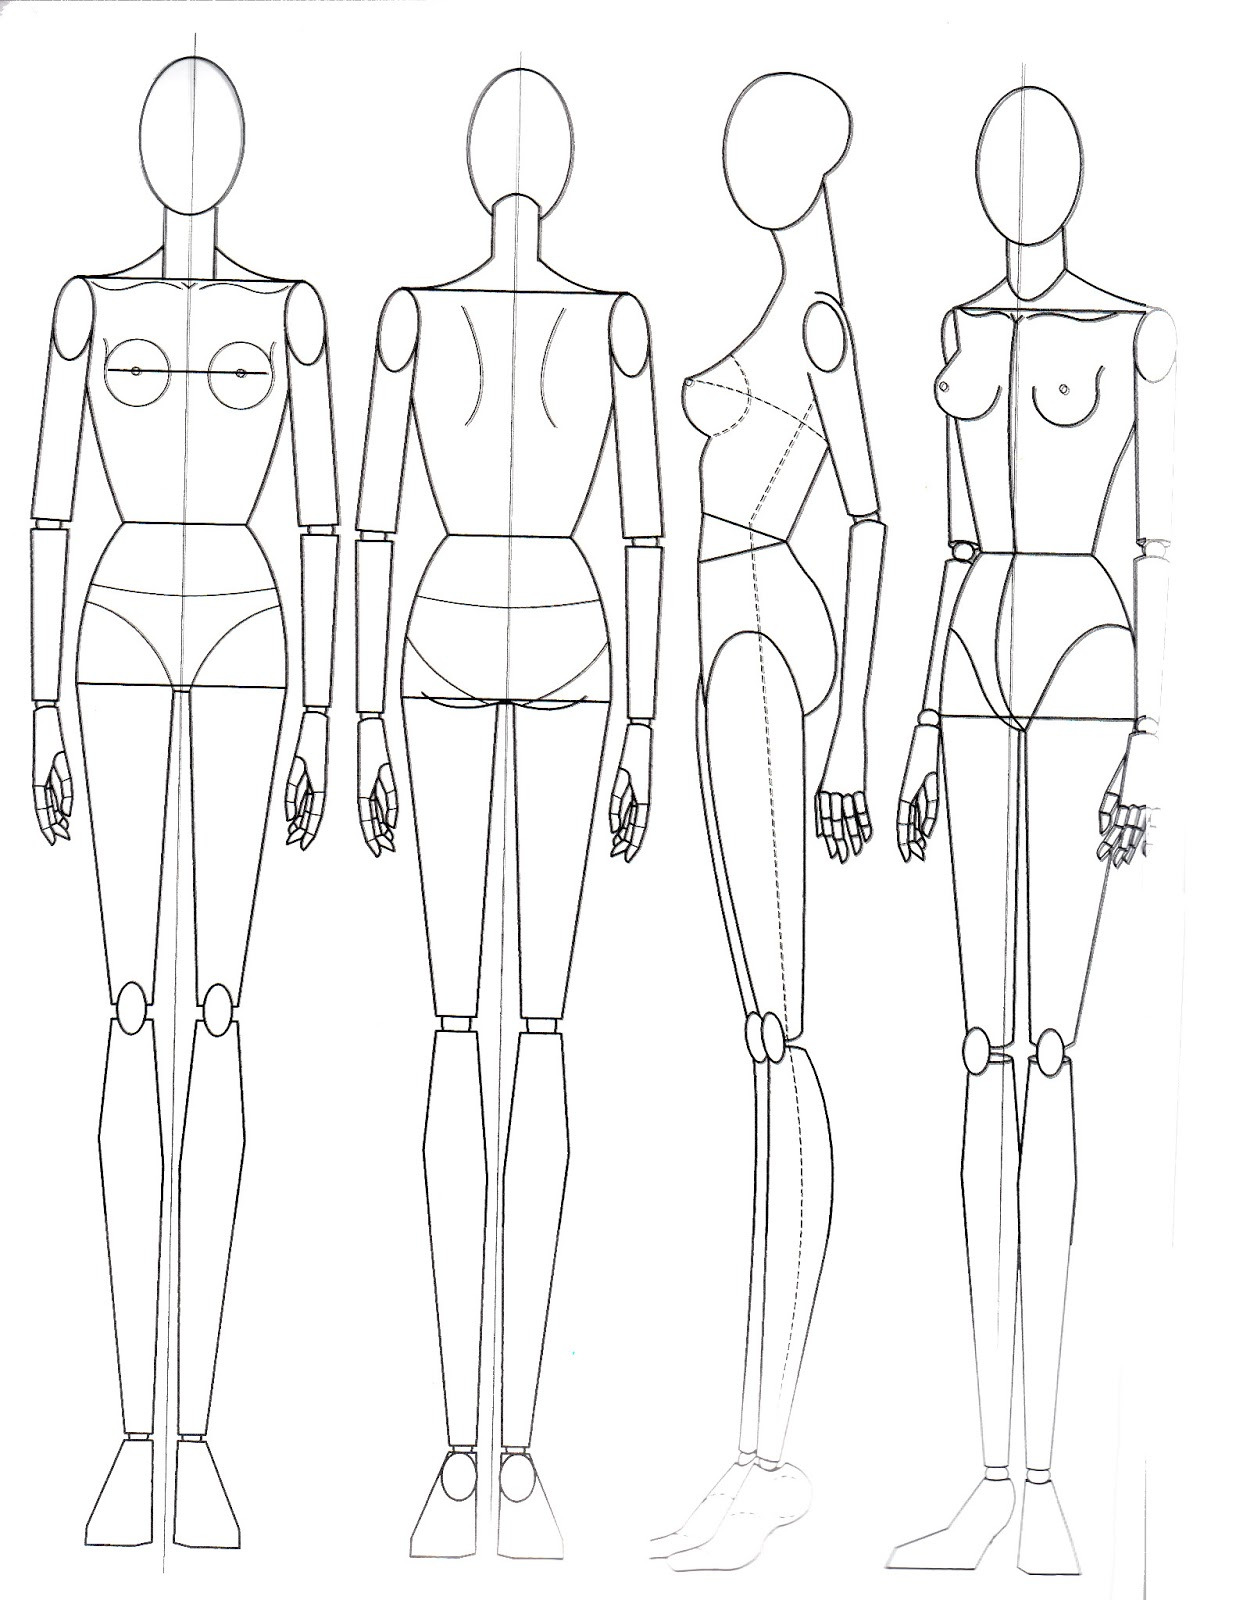 paper doll school the basics of anatomy. Black Bedroom Furniture Sets. Home Design Ideas